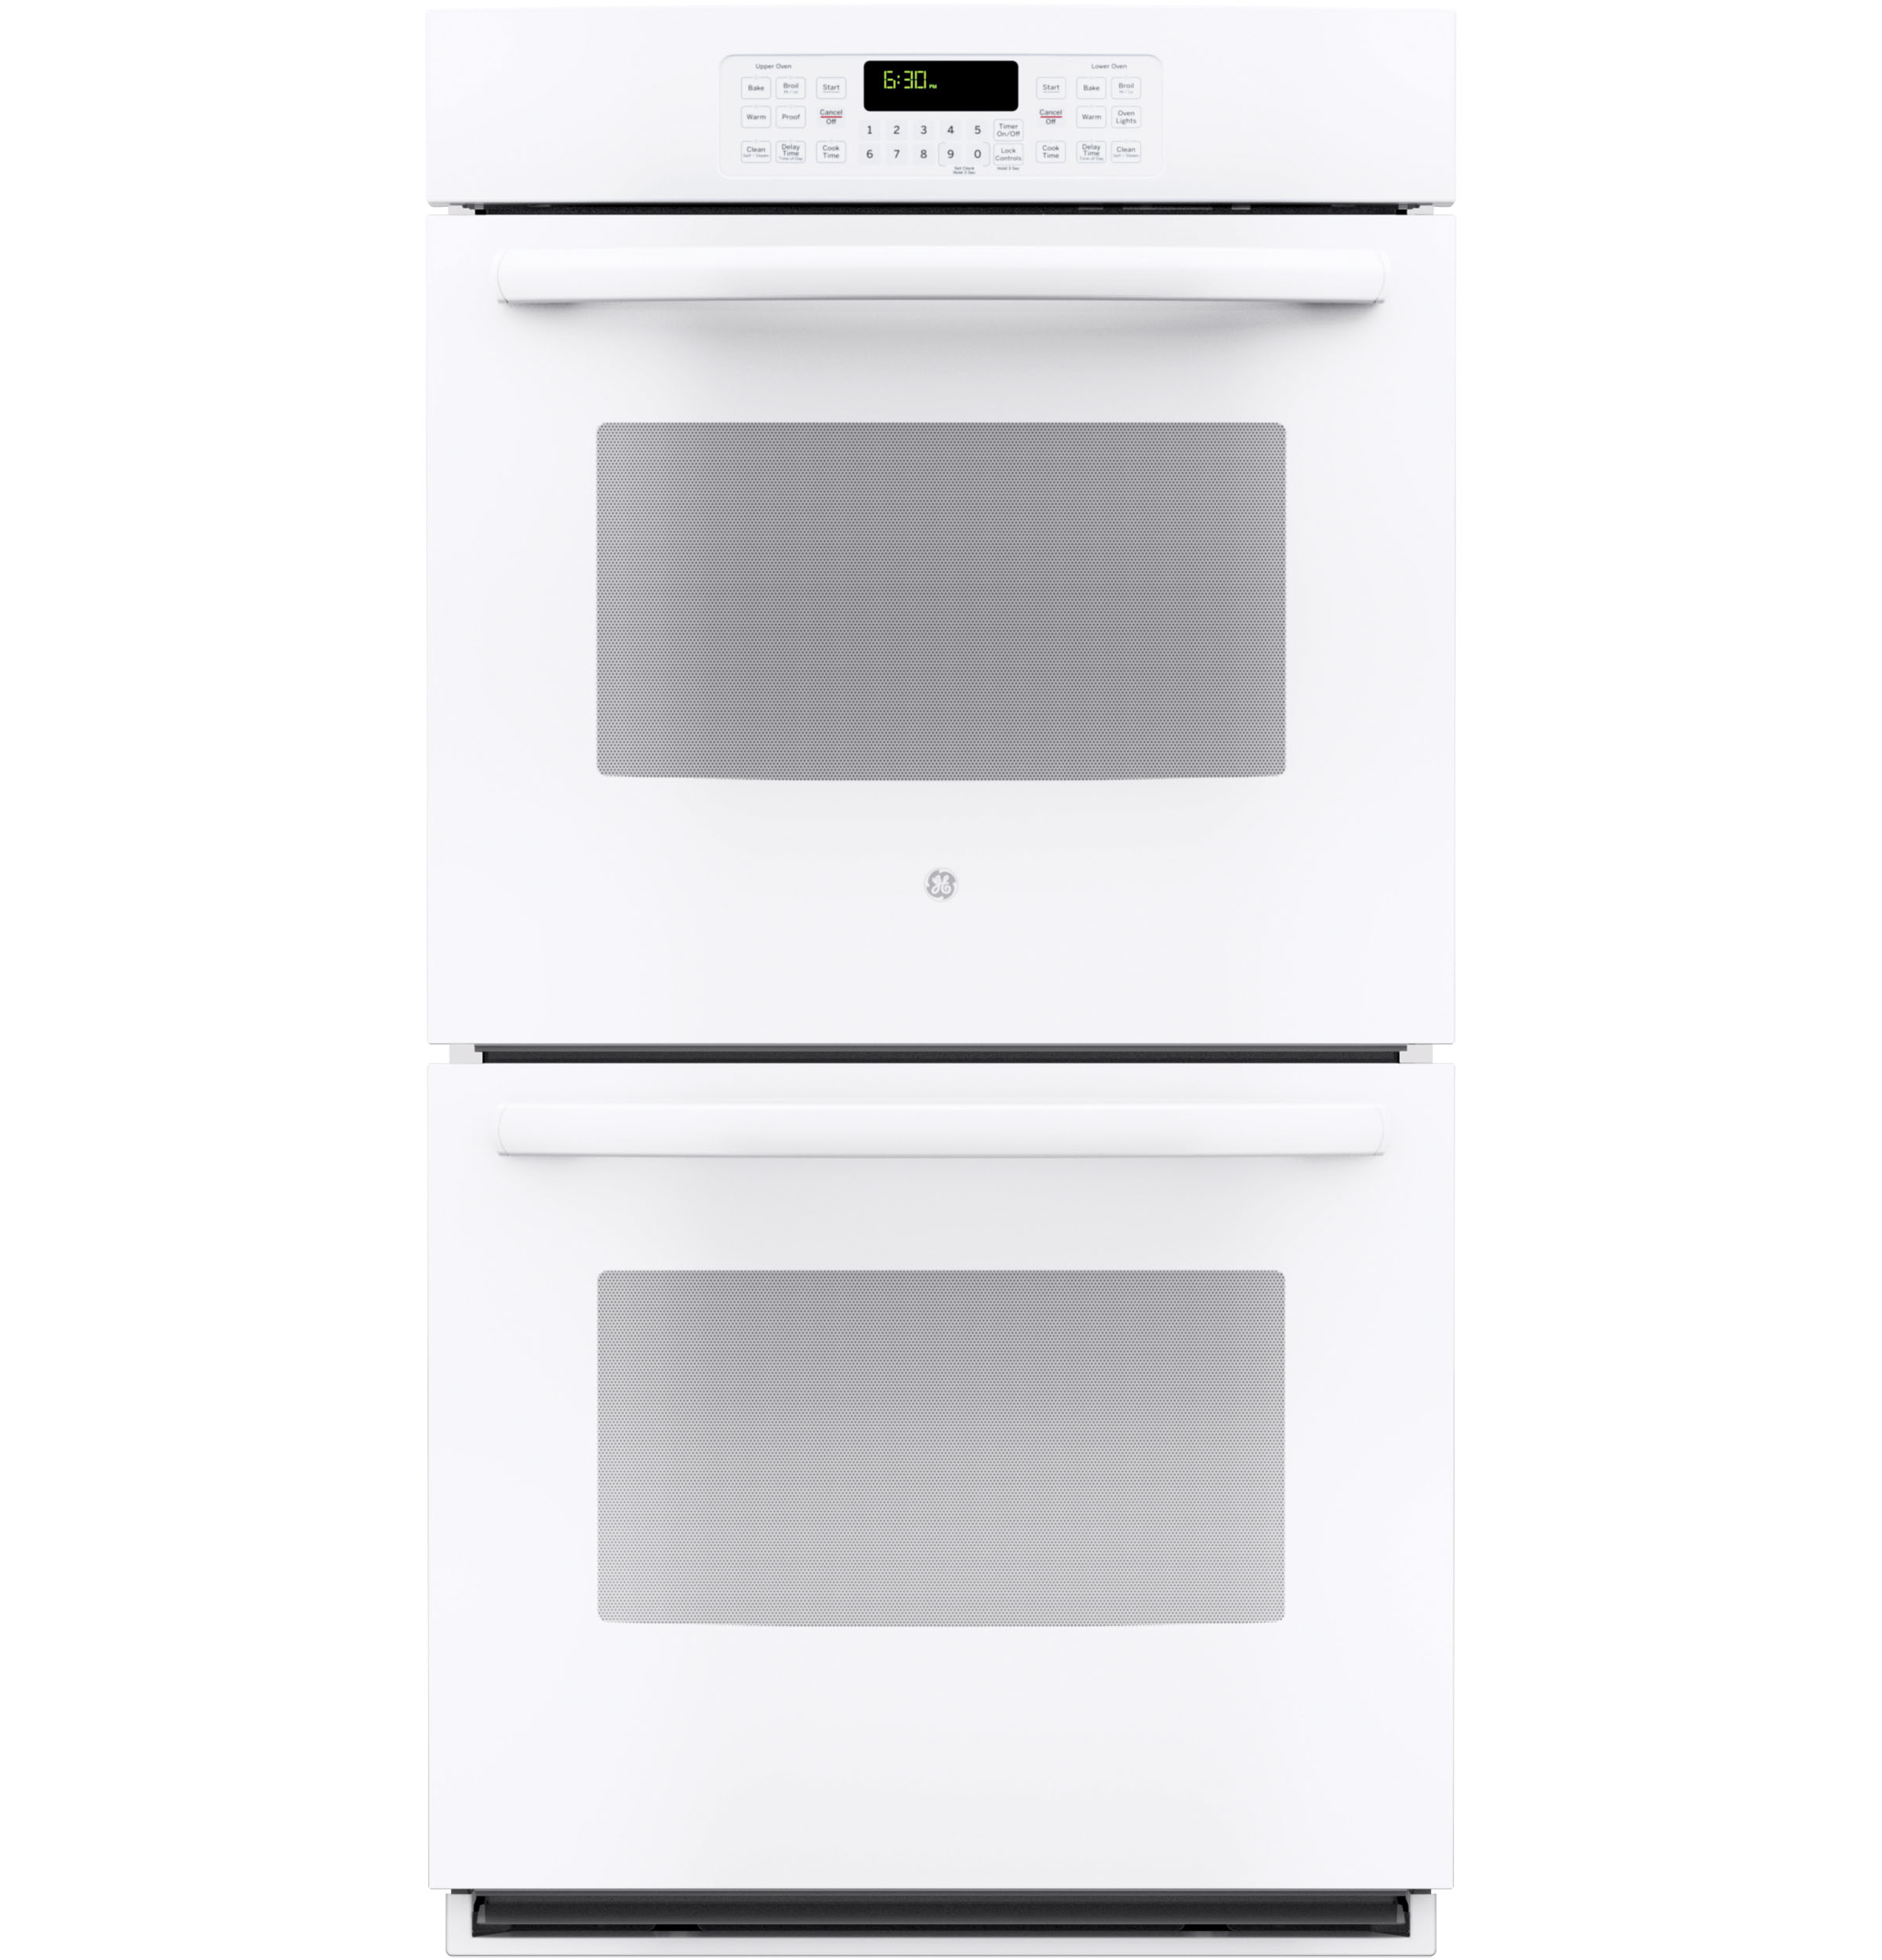 Ge 27 Built In Double Wall Oven Jk3500dfww Liances